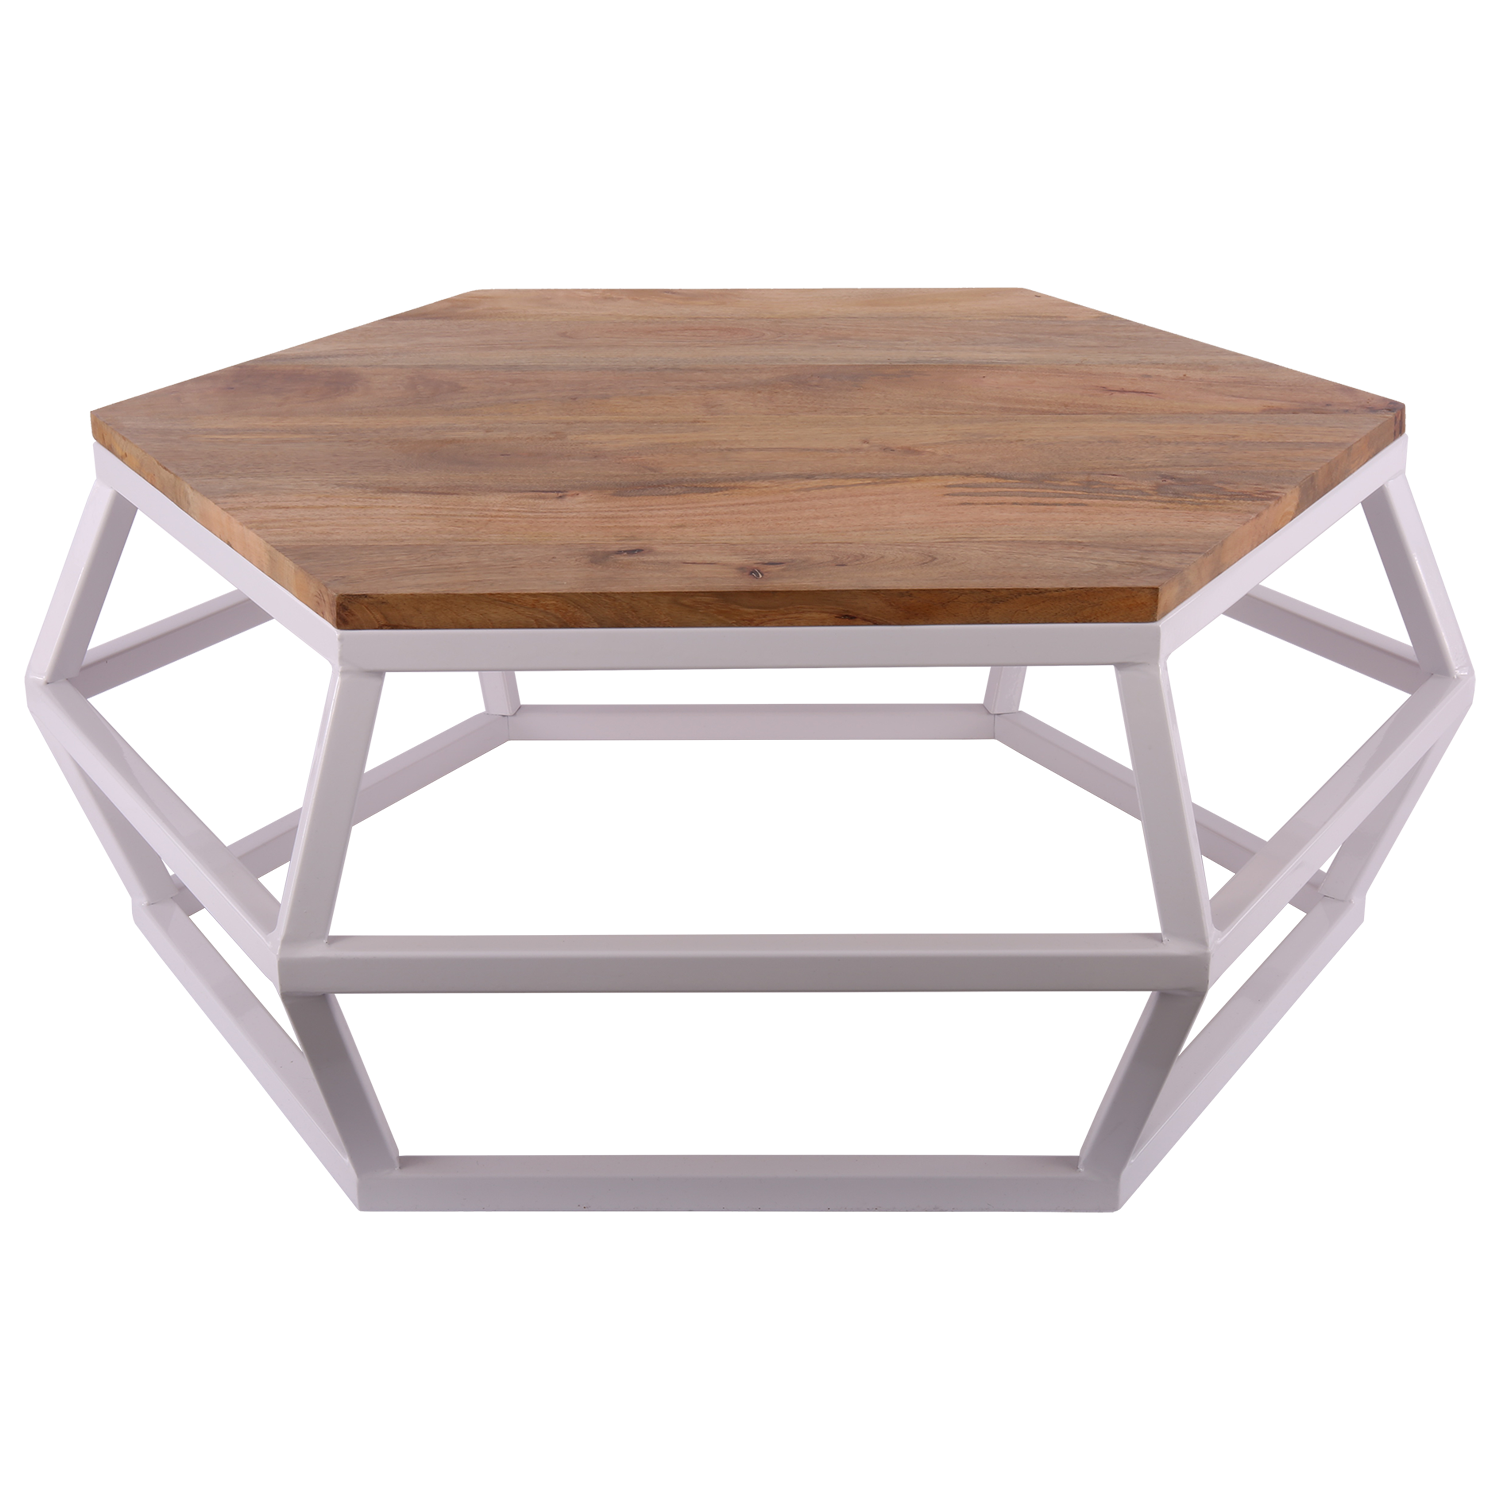 Table Basse Metal Blanc.Table Basse Hexagonale Metal Blanc Et Bois